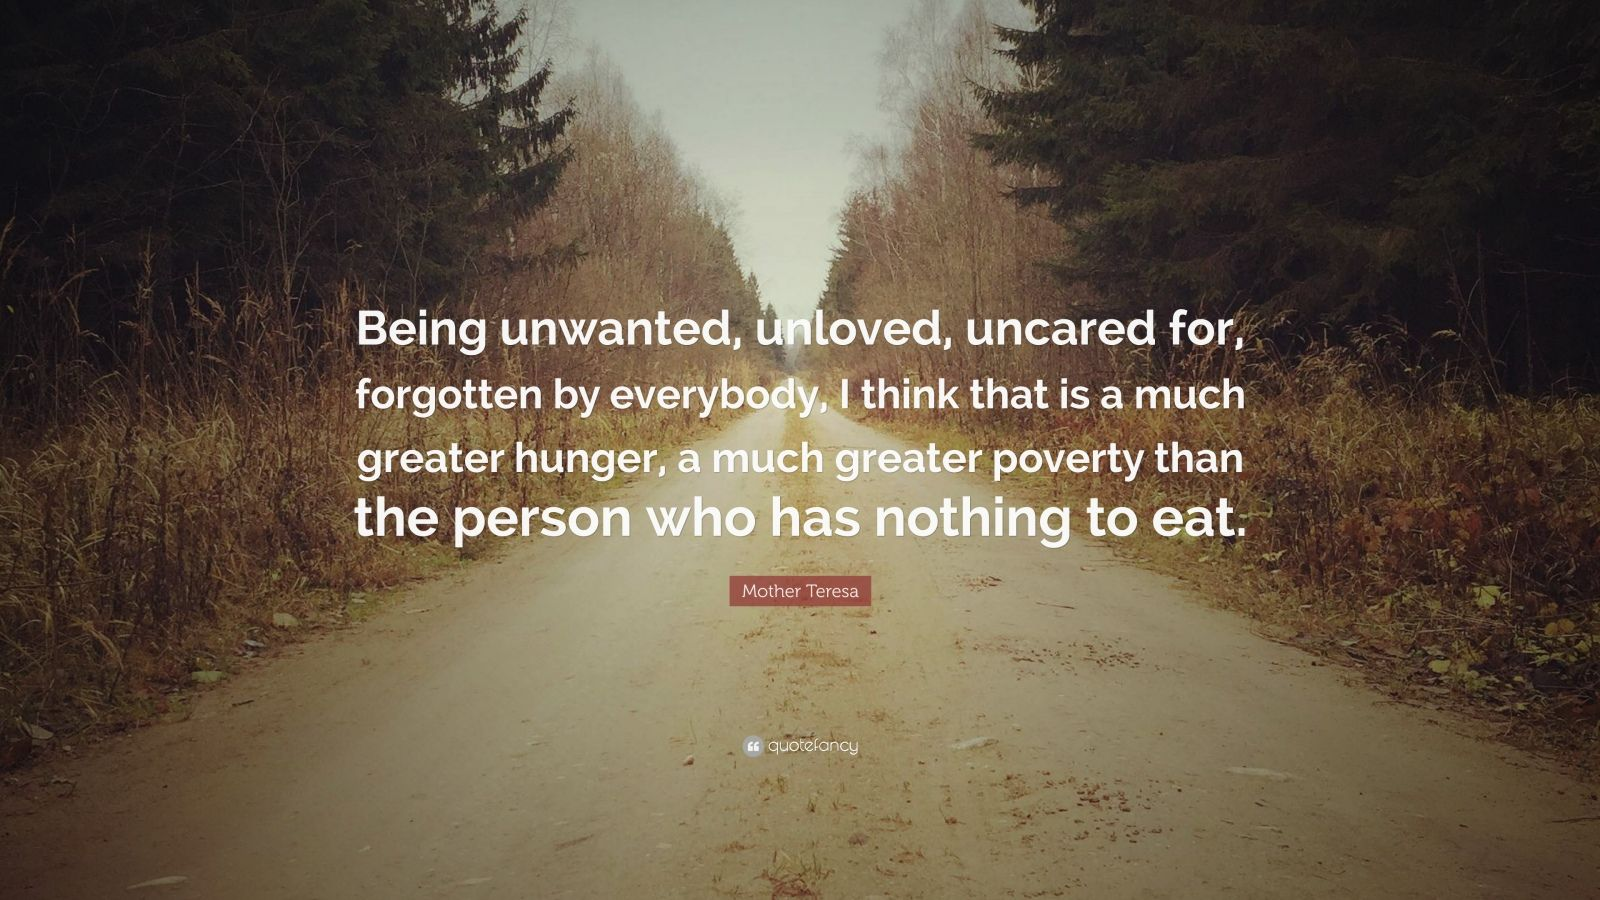 "Mother Teresa Quote: ""Being unwanted, unloved, uncared for, forgotten by everybody, I think that is a much greater hunger, a much greater poverty than the person who has nothing to eat."""